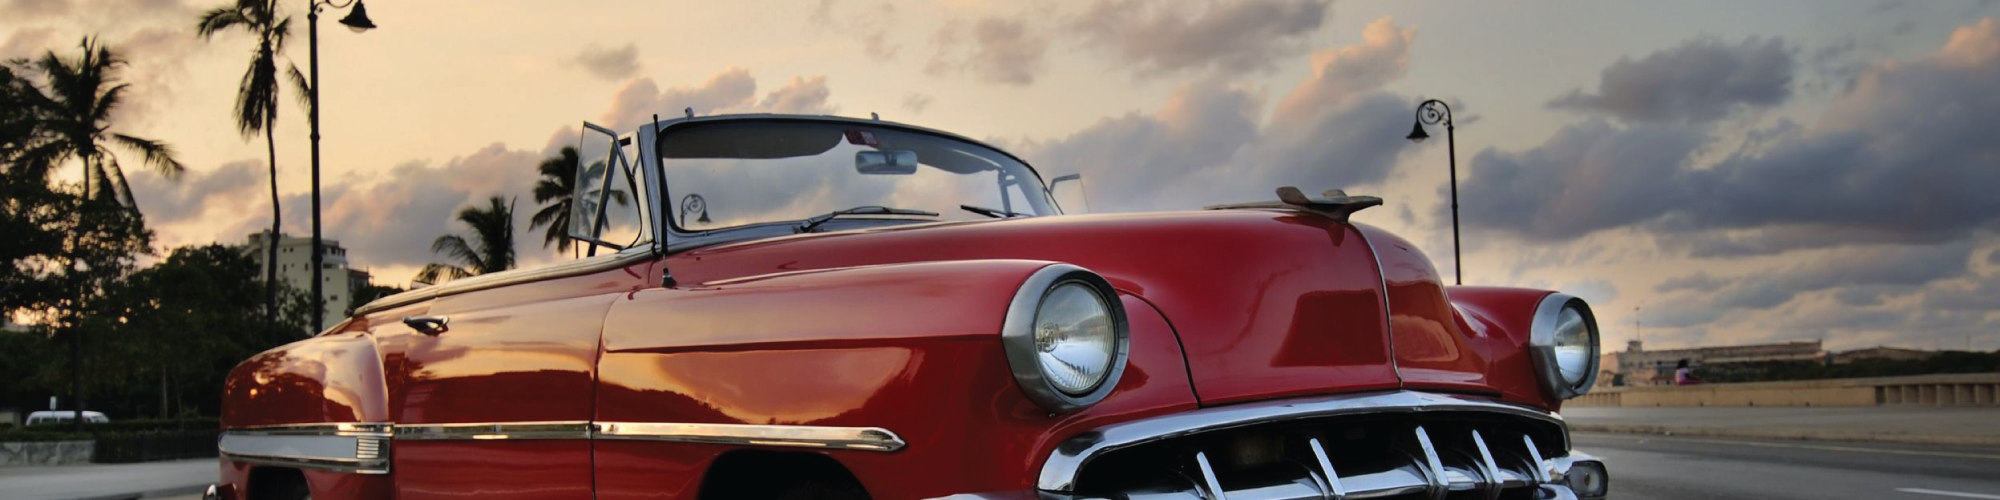 Get Your Classic Car Shipped With Suncoast Auto Transport - Classic car guide